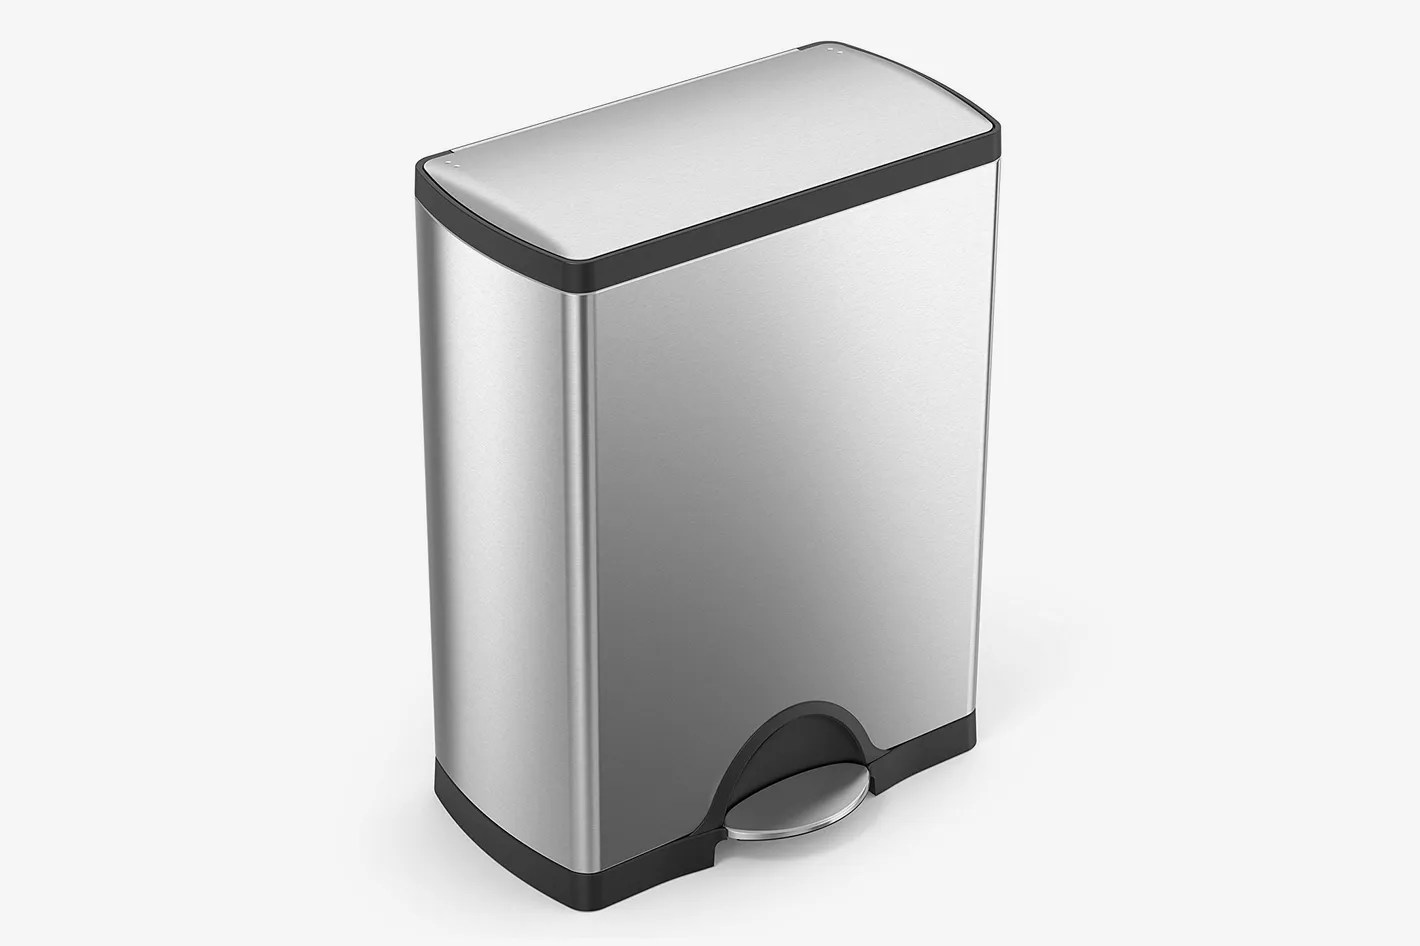 Metal Indoor Trash Can Simplehuman 50 Liter 13 2 Gallon Stainless Steel Rectangular Kitchen Step Trash Can Brushed Stainless Steel